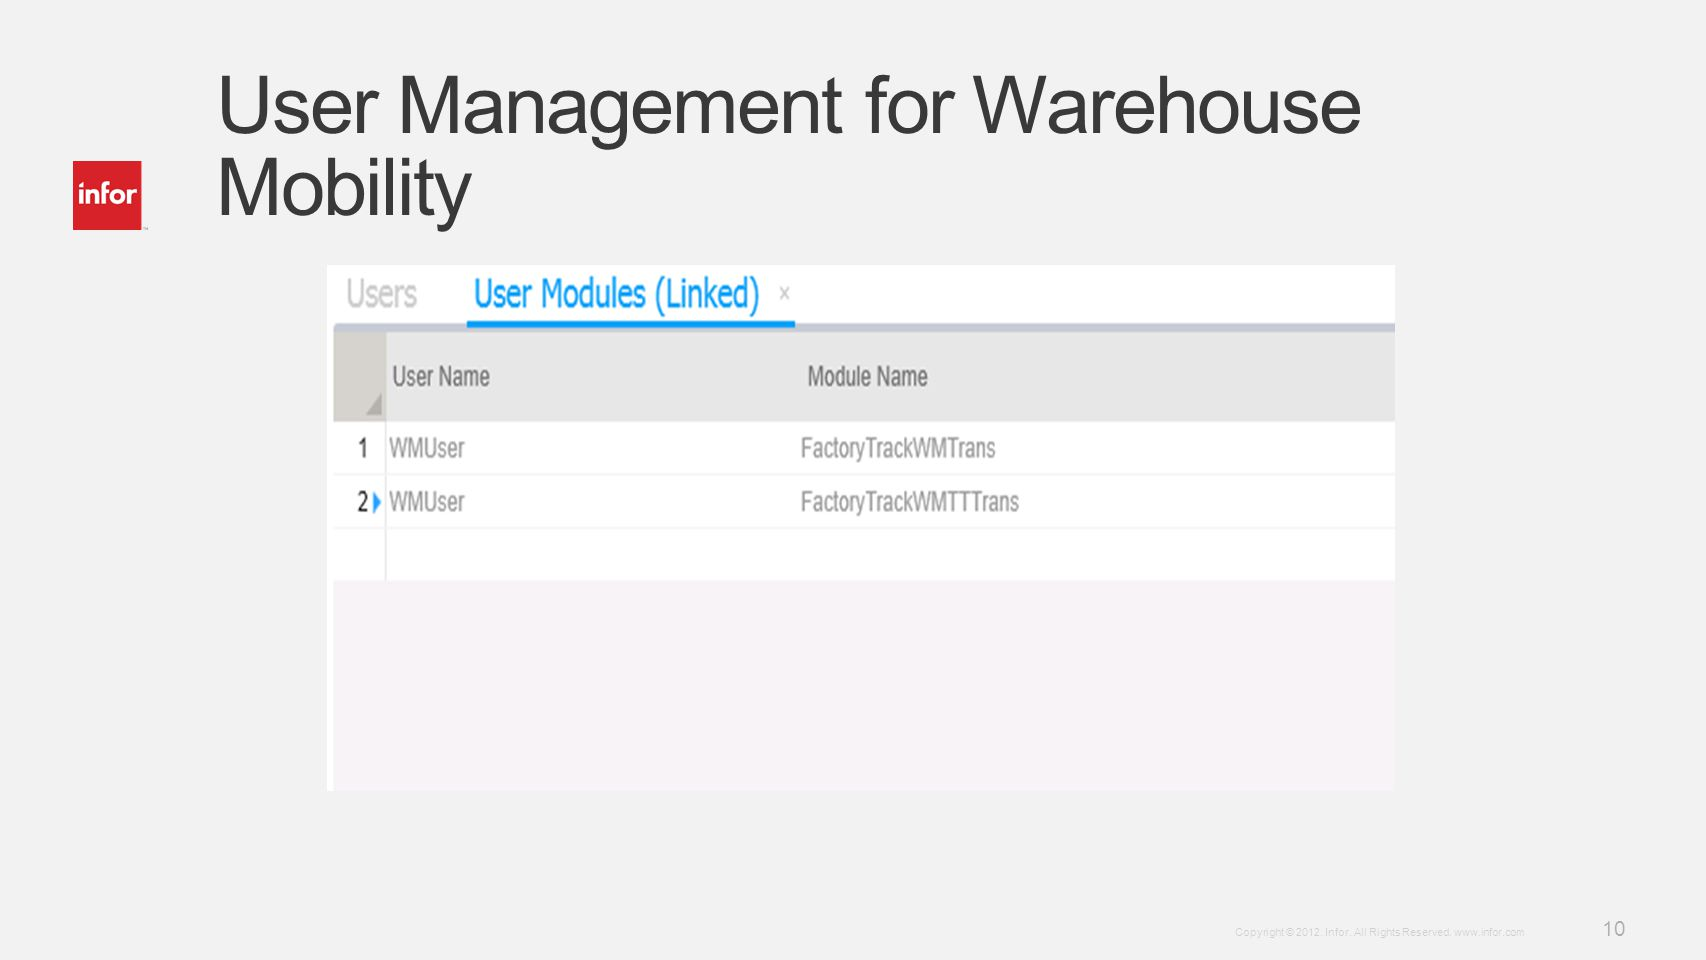 User Management for Warehouse Mobility